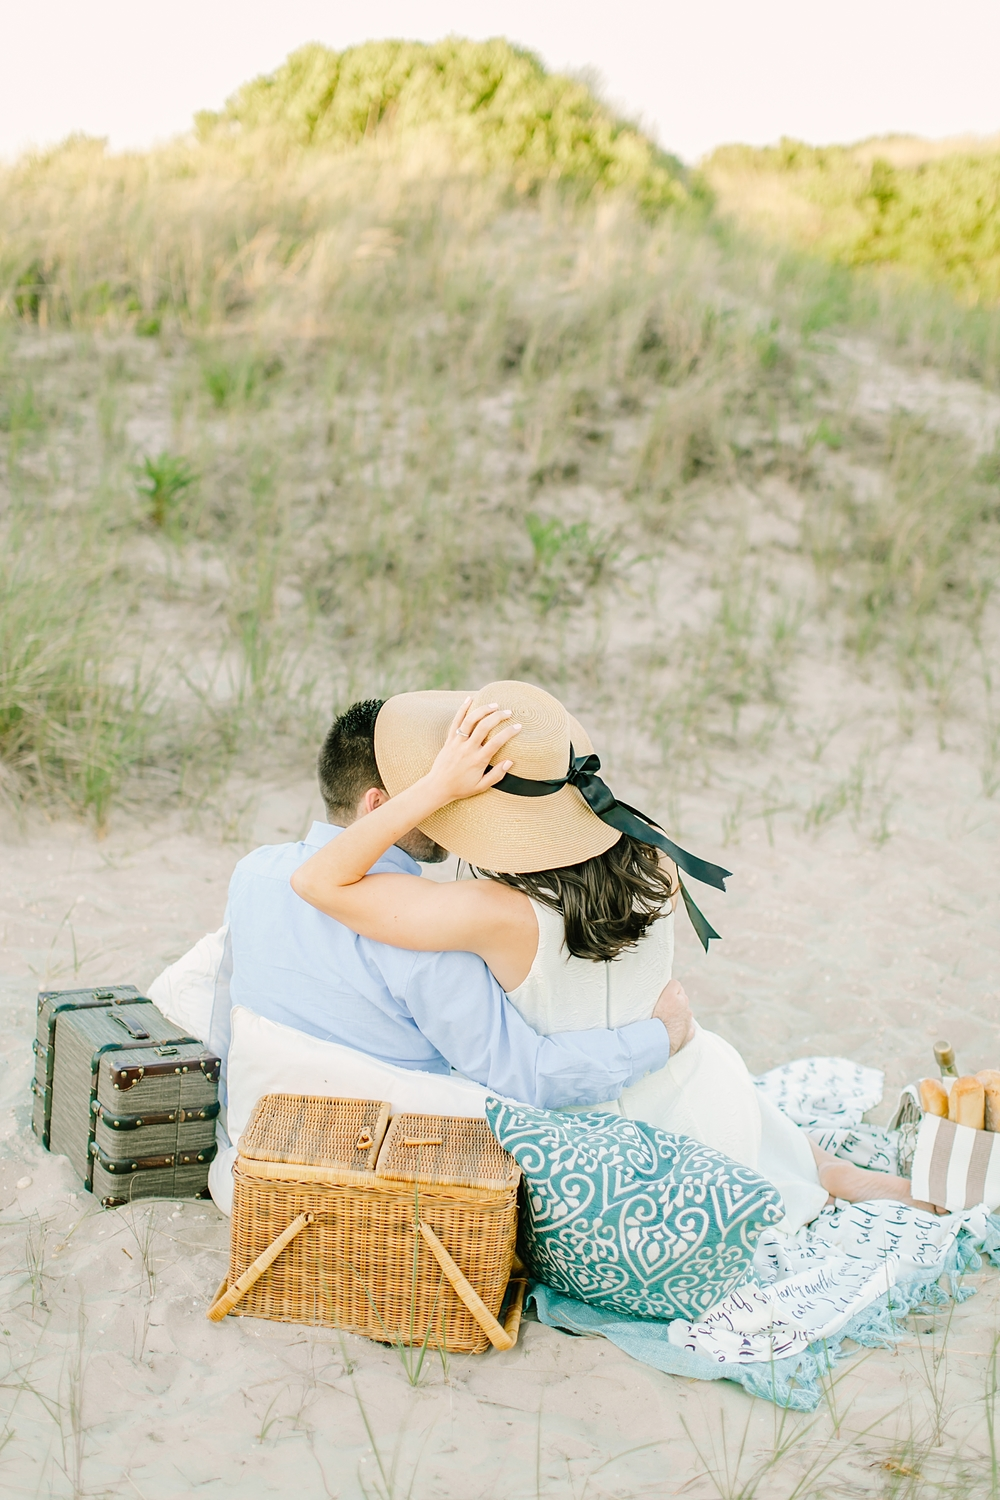 stone_harbor_new_jersey_engagement_phots_0013.jpg